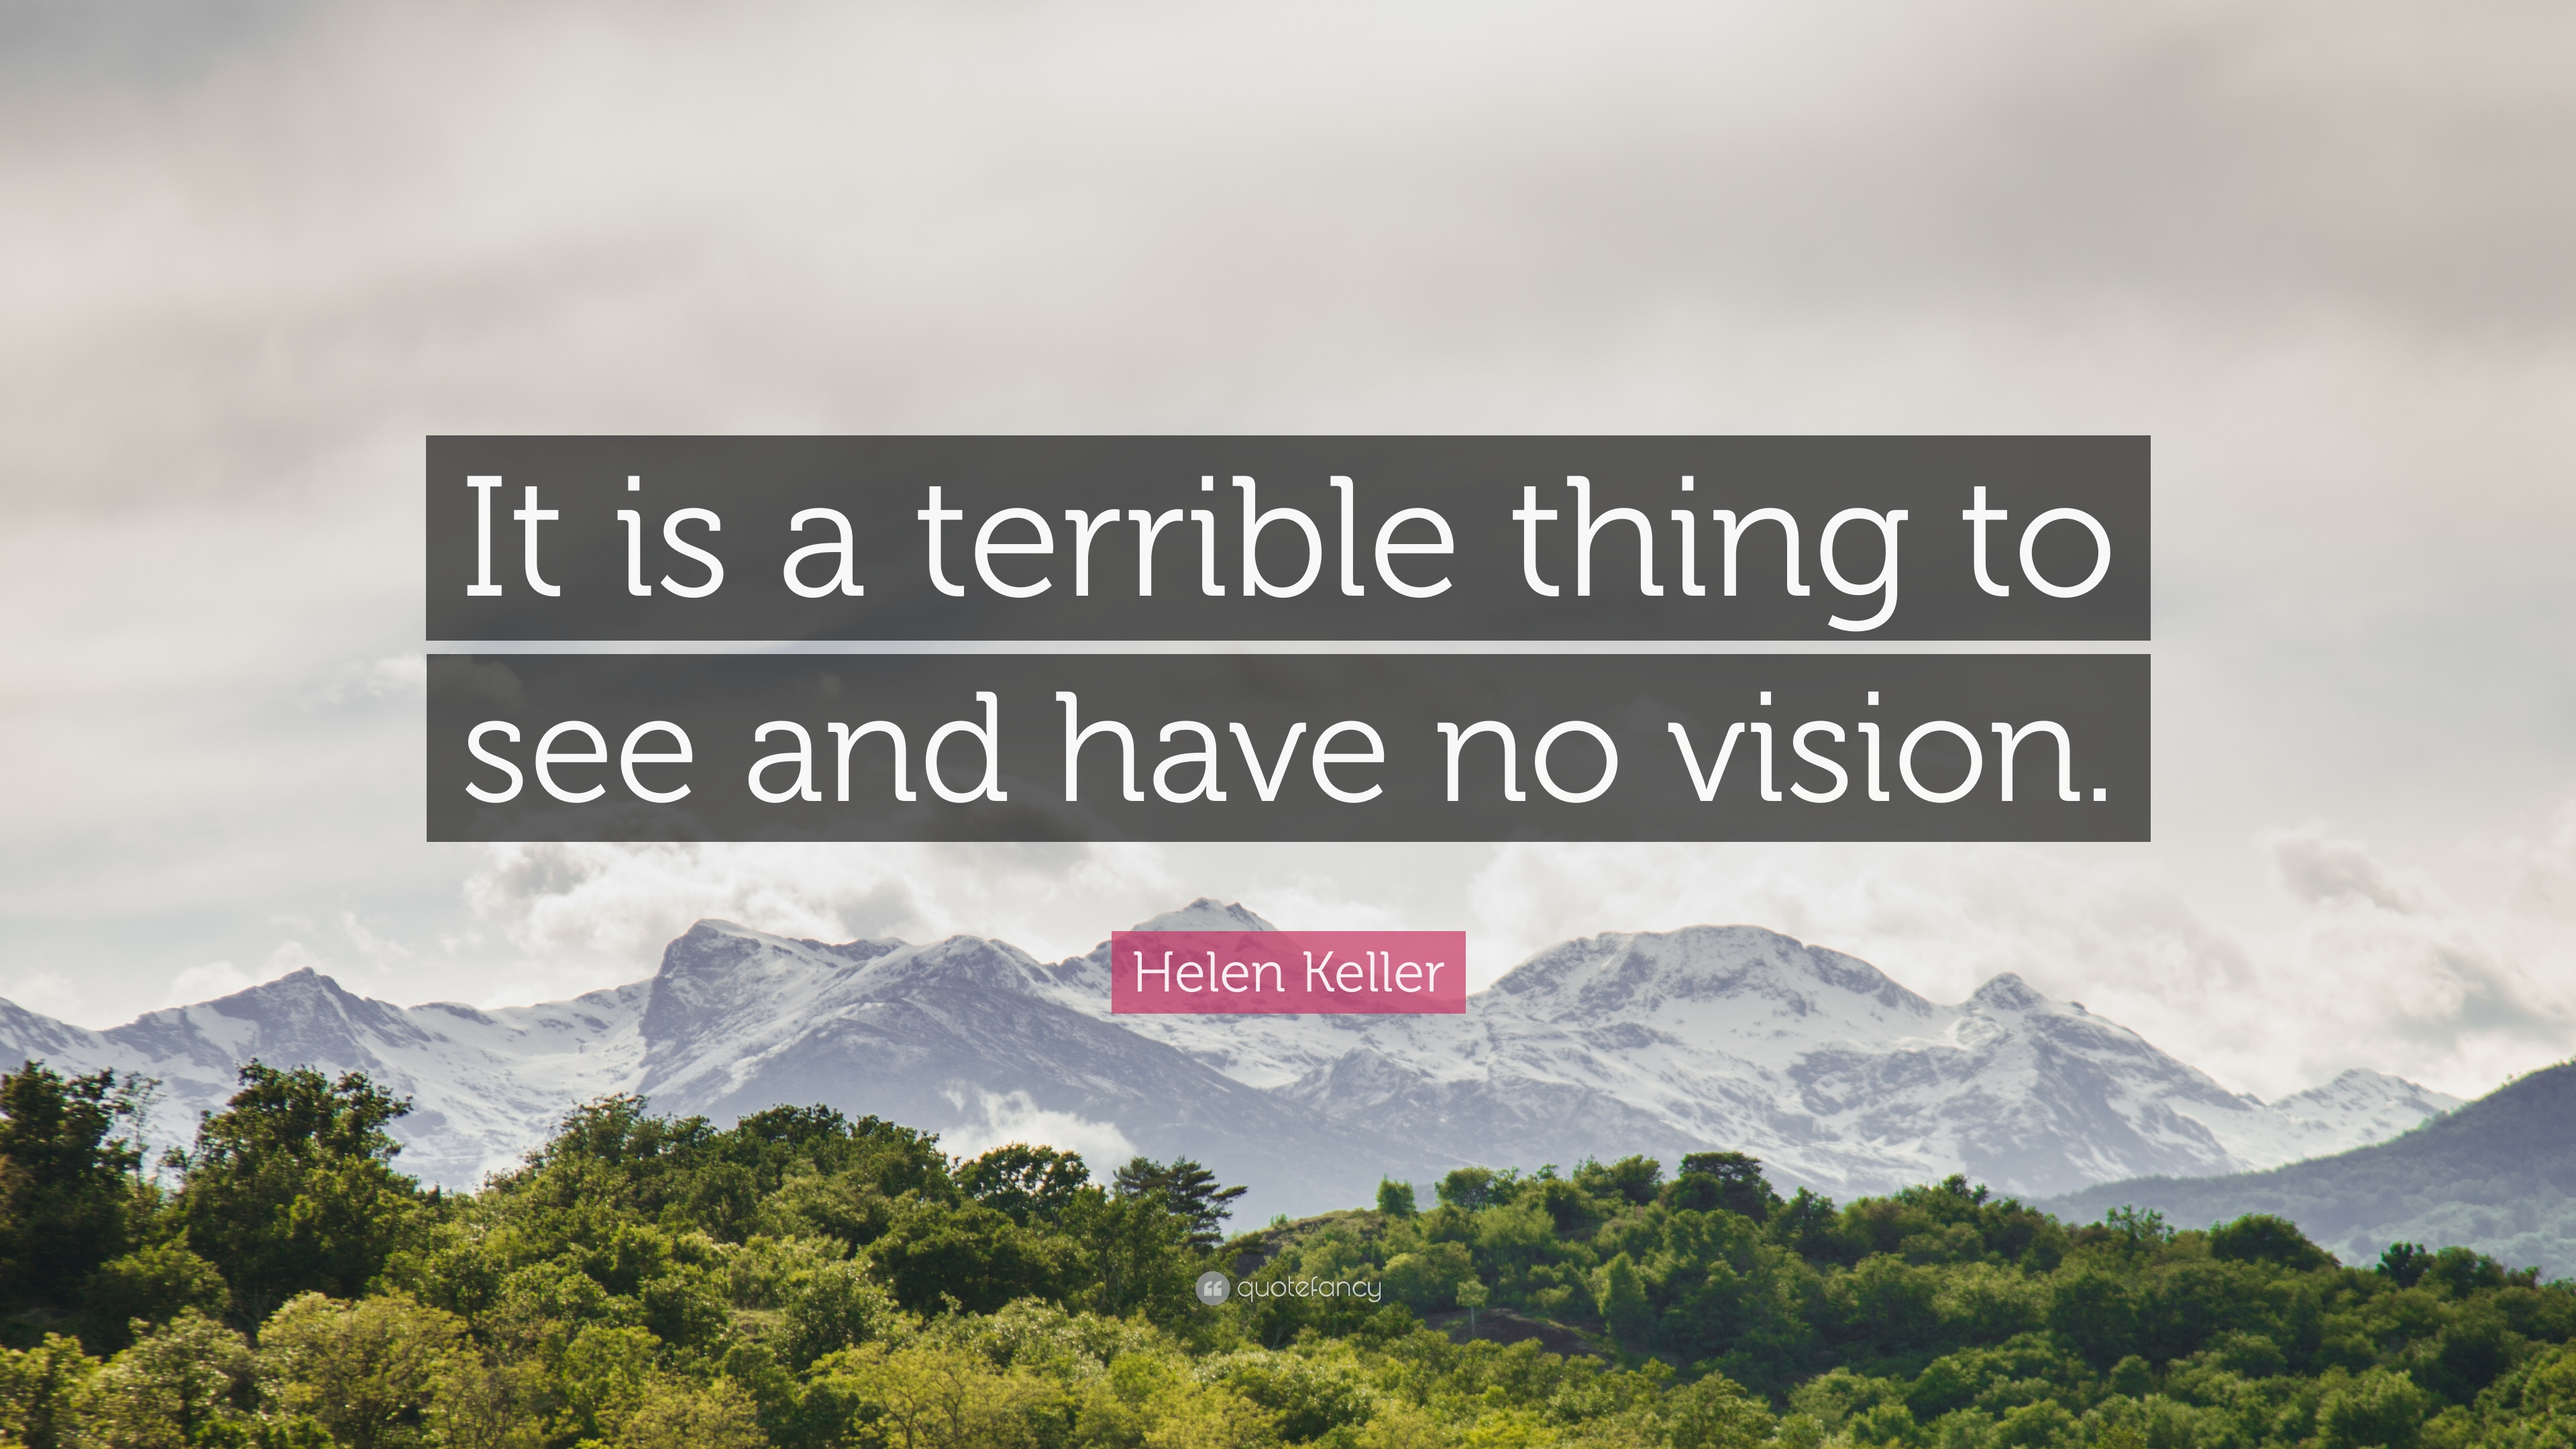 Helen Keller Quote It Is A Terrible Thing To See And Have No Vision